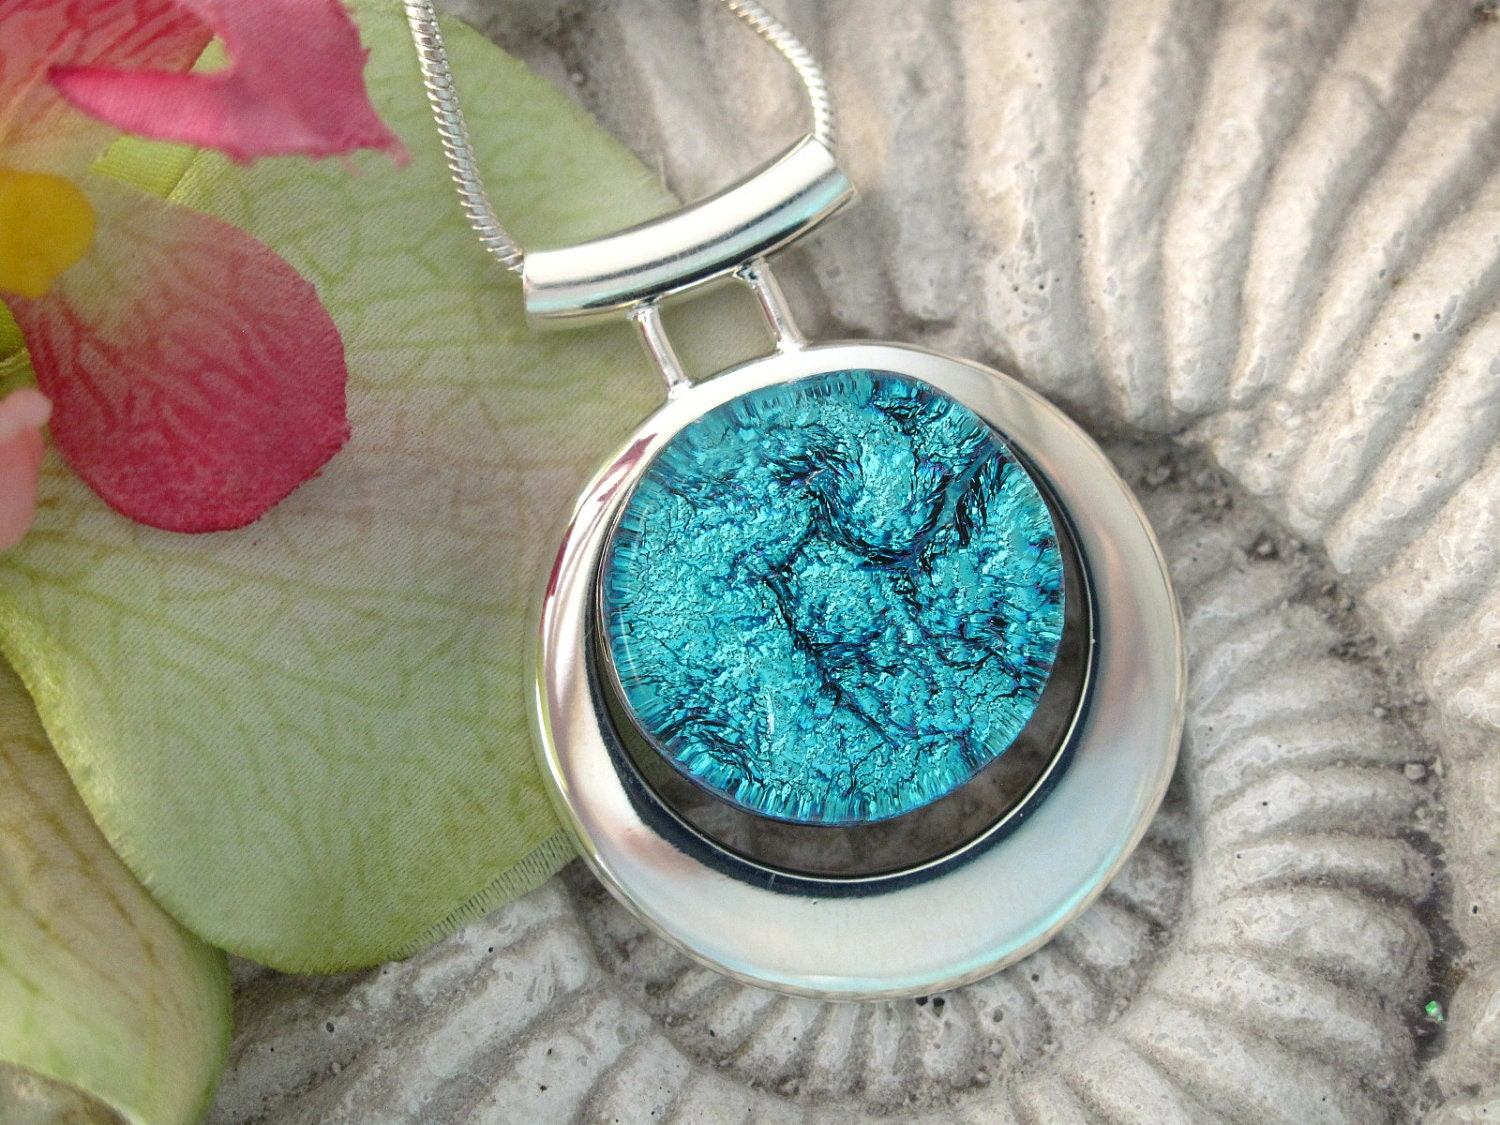 Blue Slide Necklace - Dichroic Fused Glass Jewelry -  Dichroic Necklace - Fused Glass Jewelry - Aqua Blue Necklace 100612p126